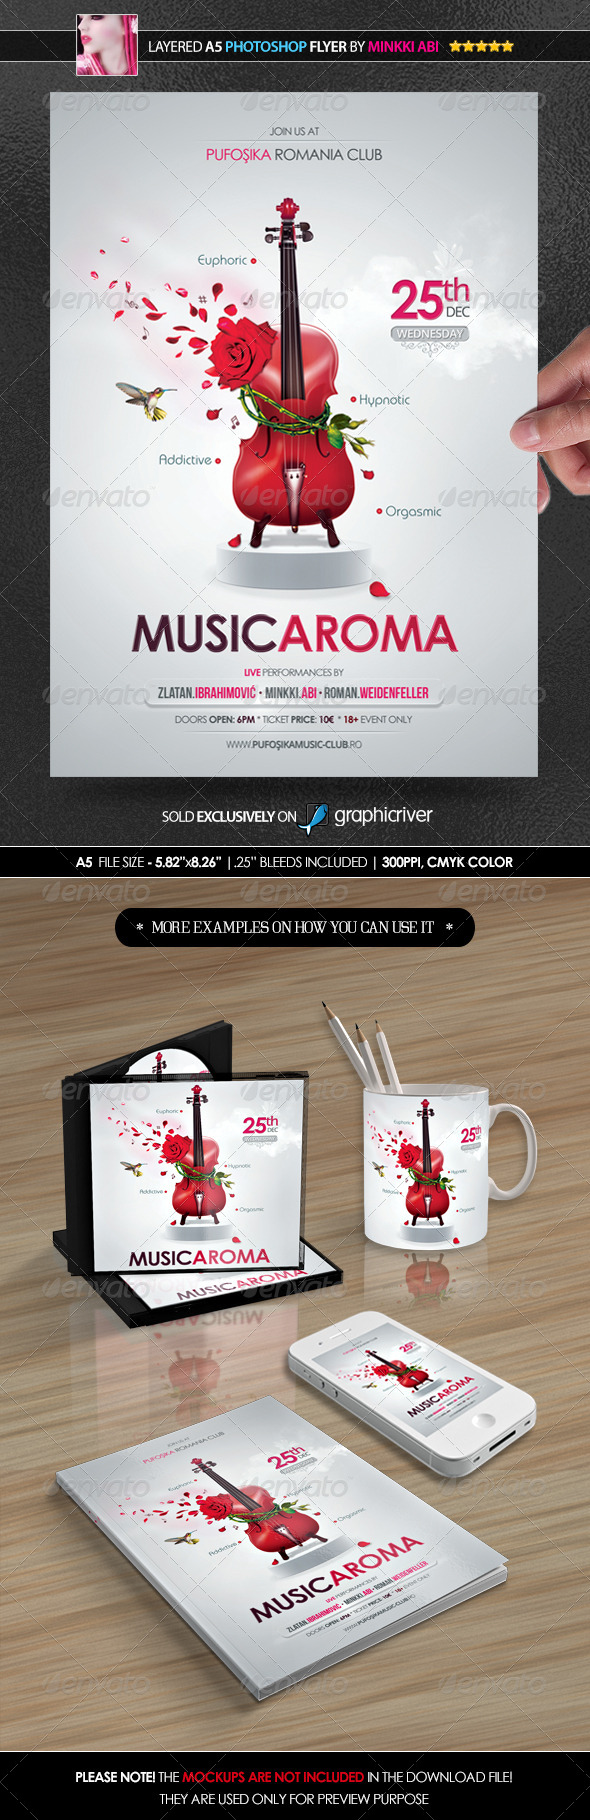 Music Aroma Poster/Flyer - Flyers Print Templates